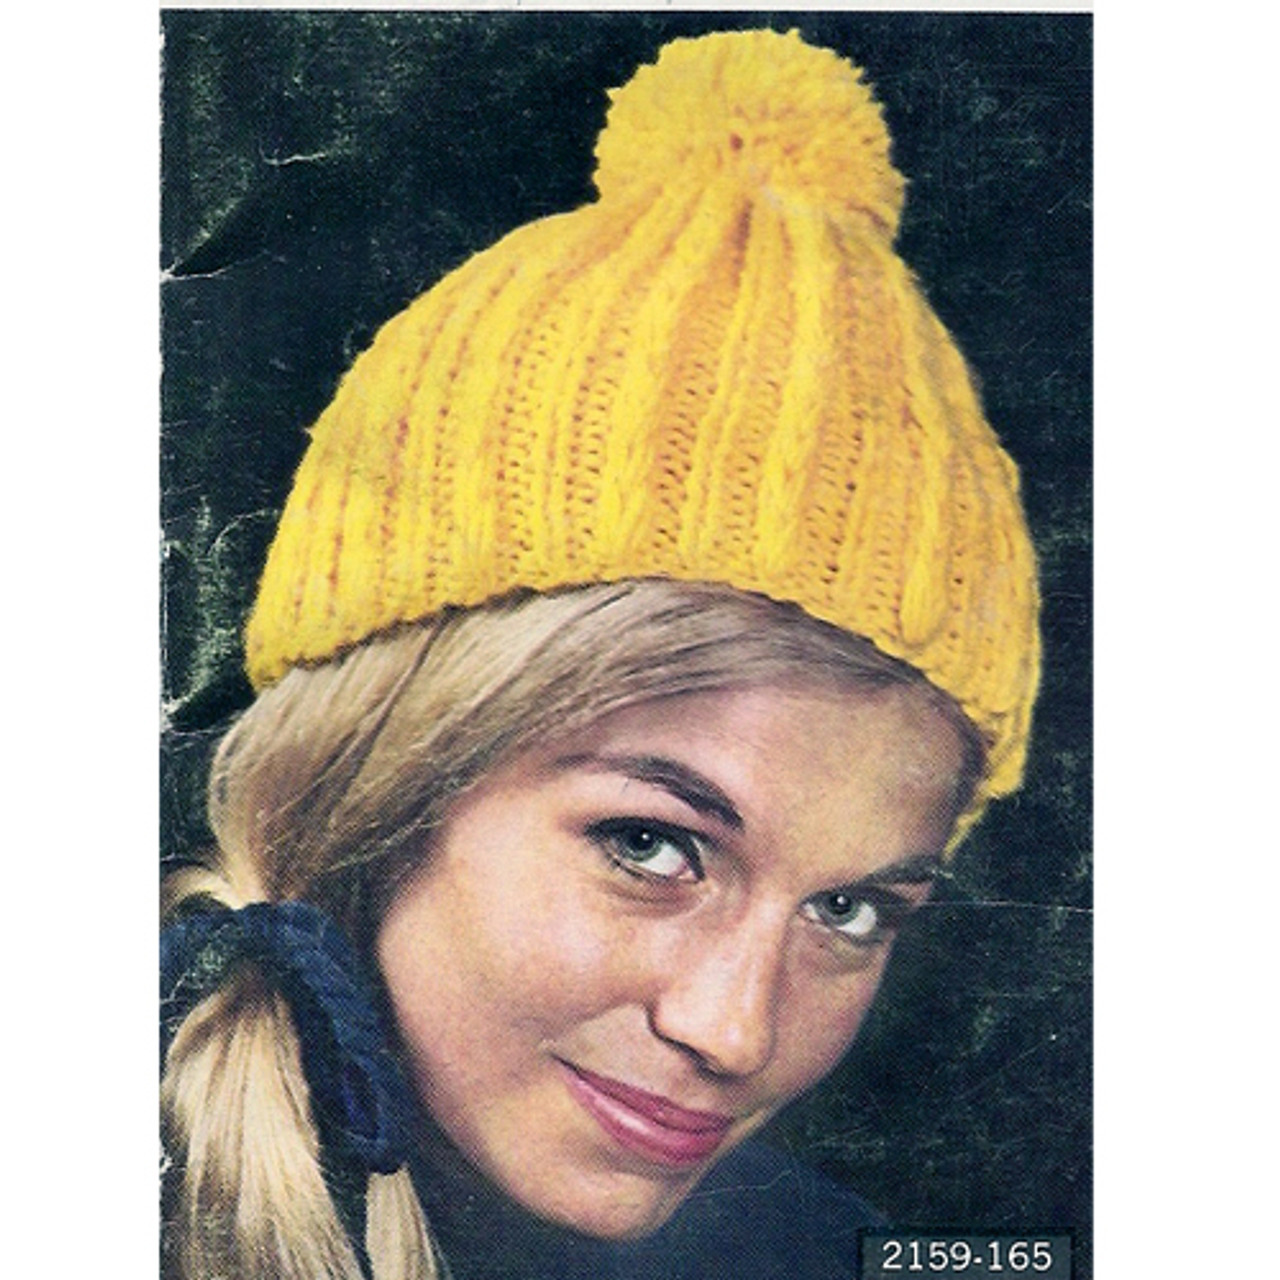 Ribbed Stocking Cap Knitting Pattern from Vintage Knit Crochet